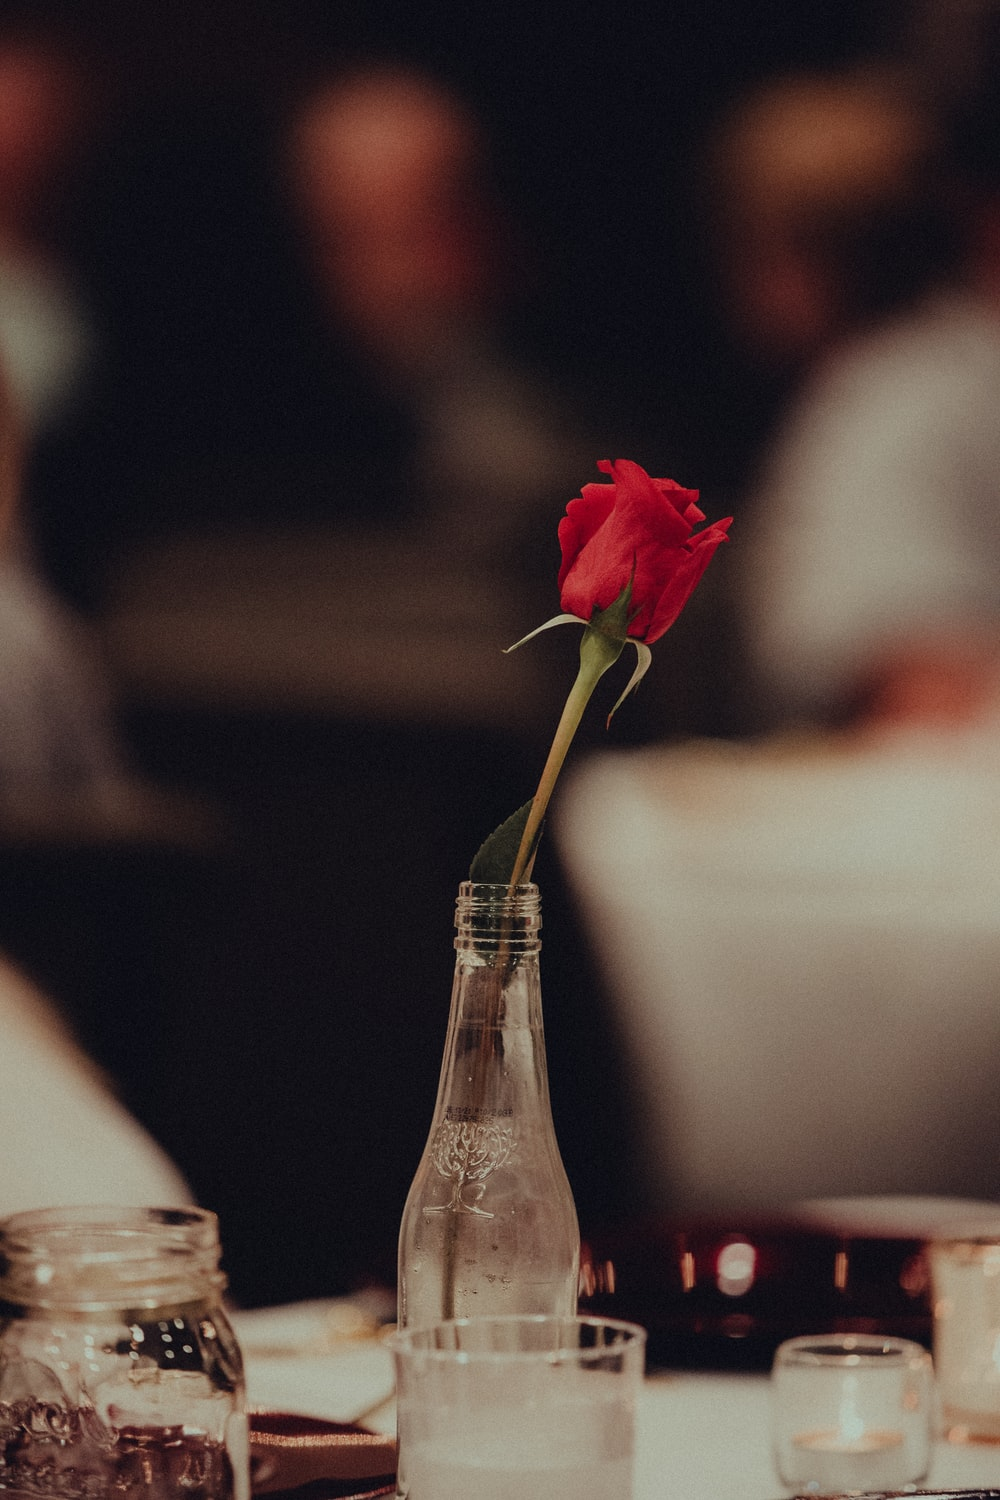 red rose in clear glass bottle